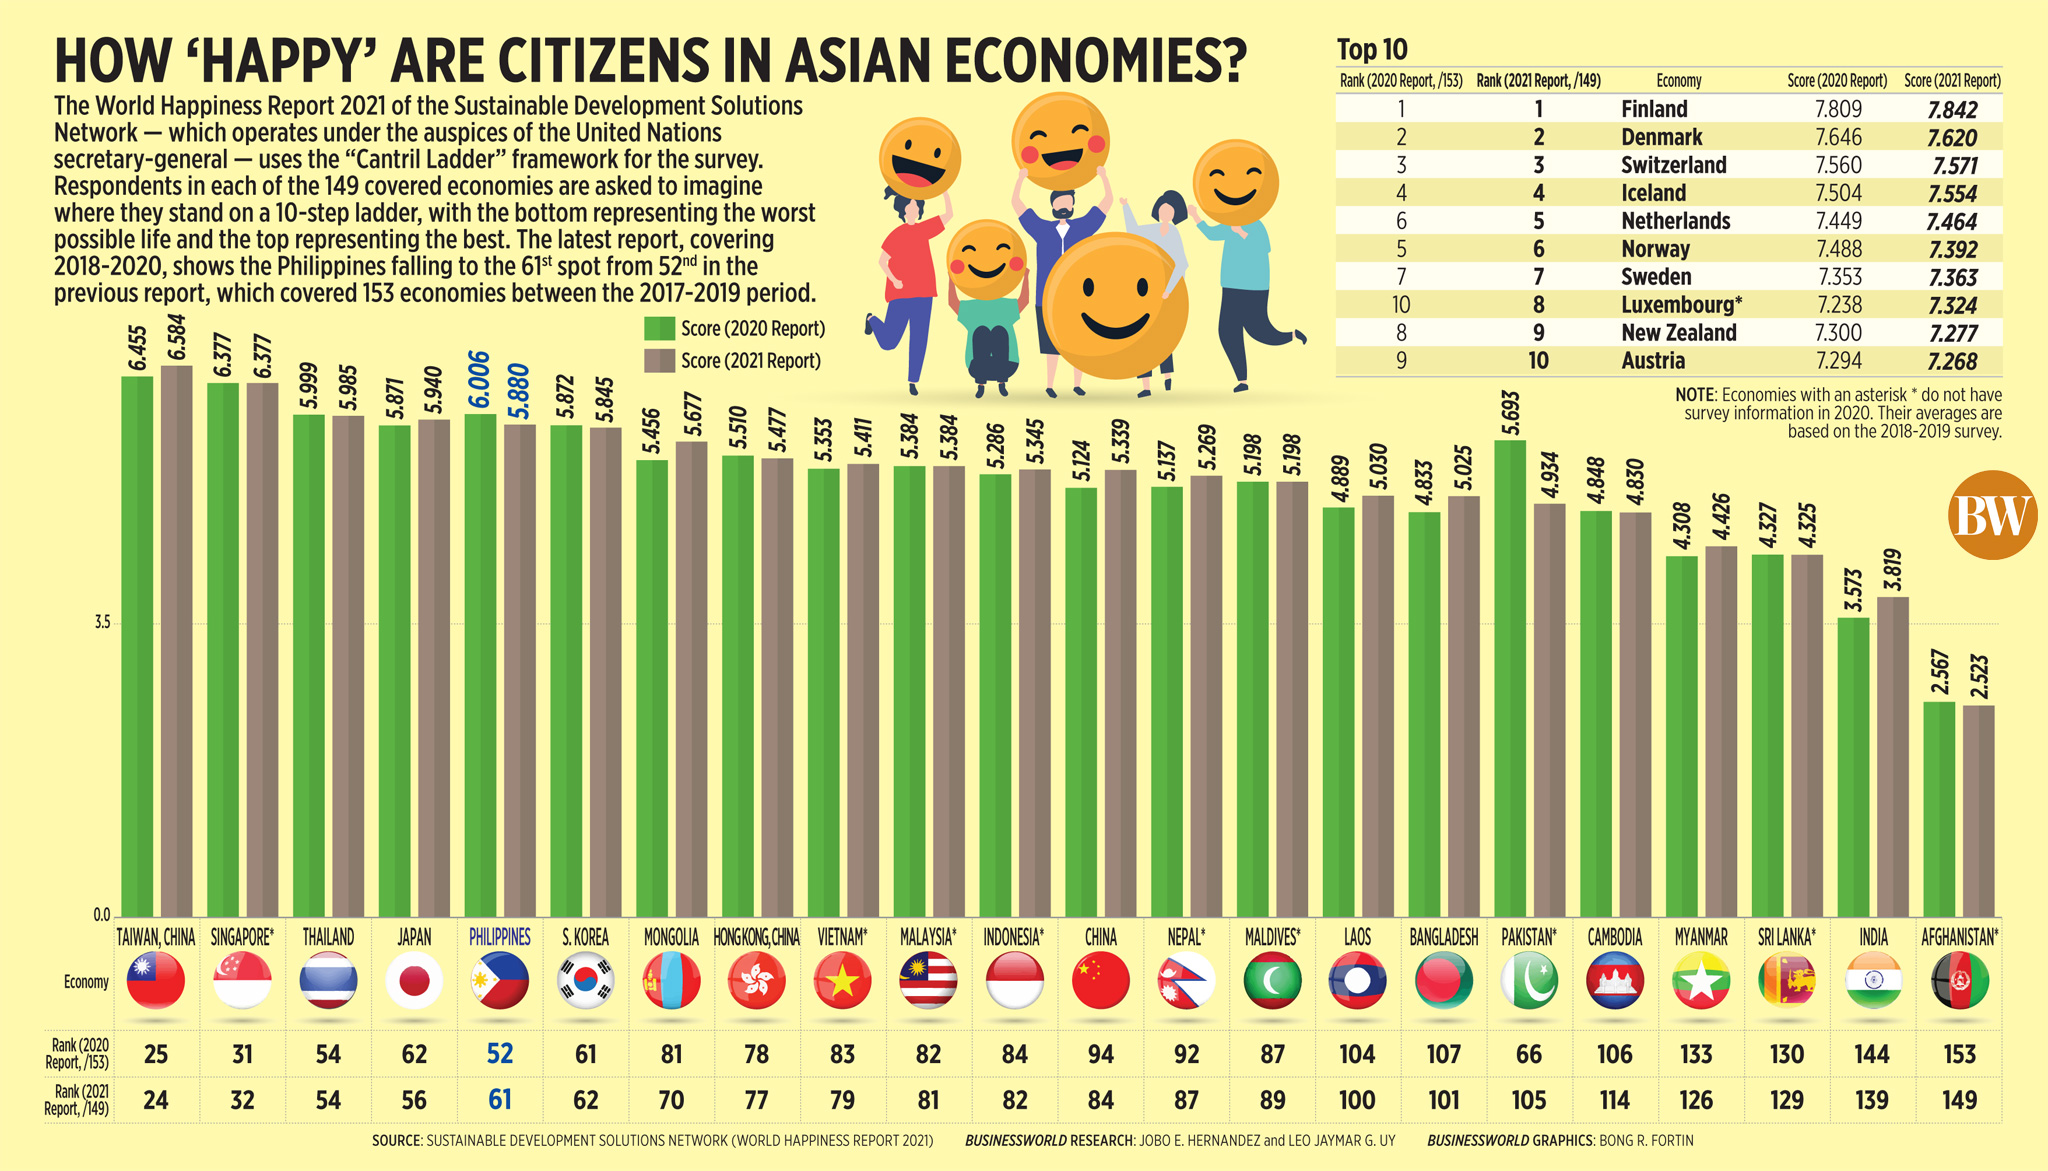 How 'happy' are citizens in Asian economies?